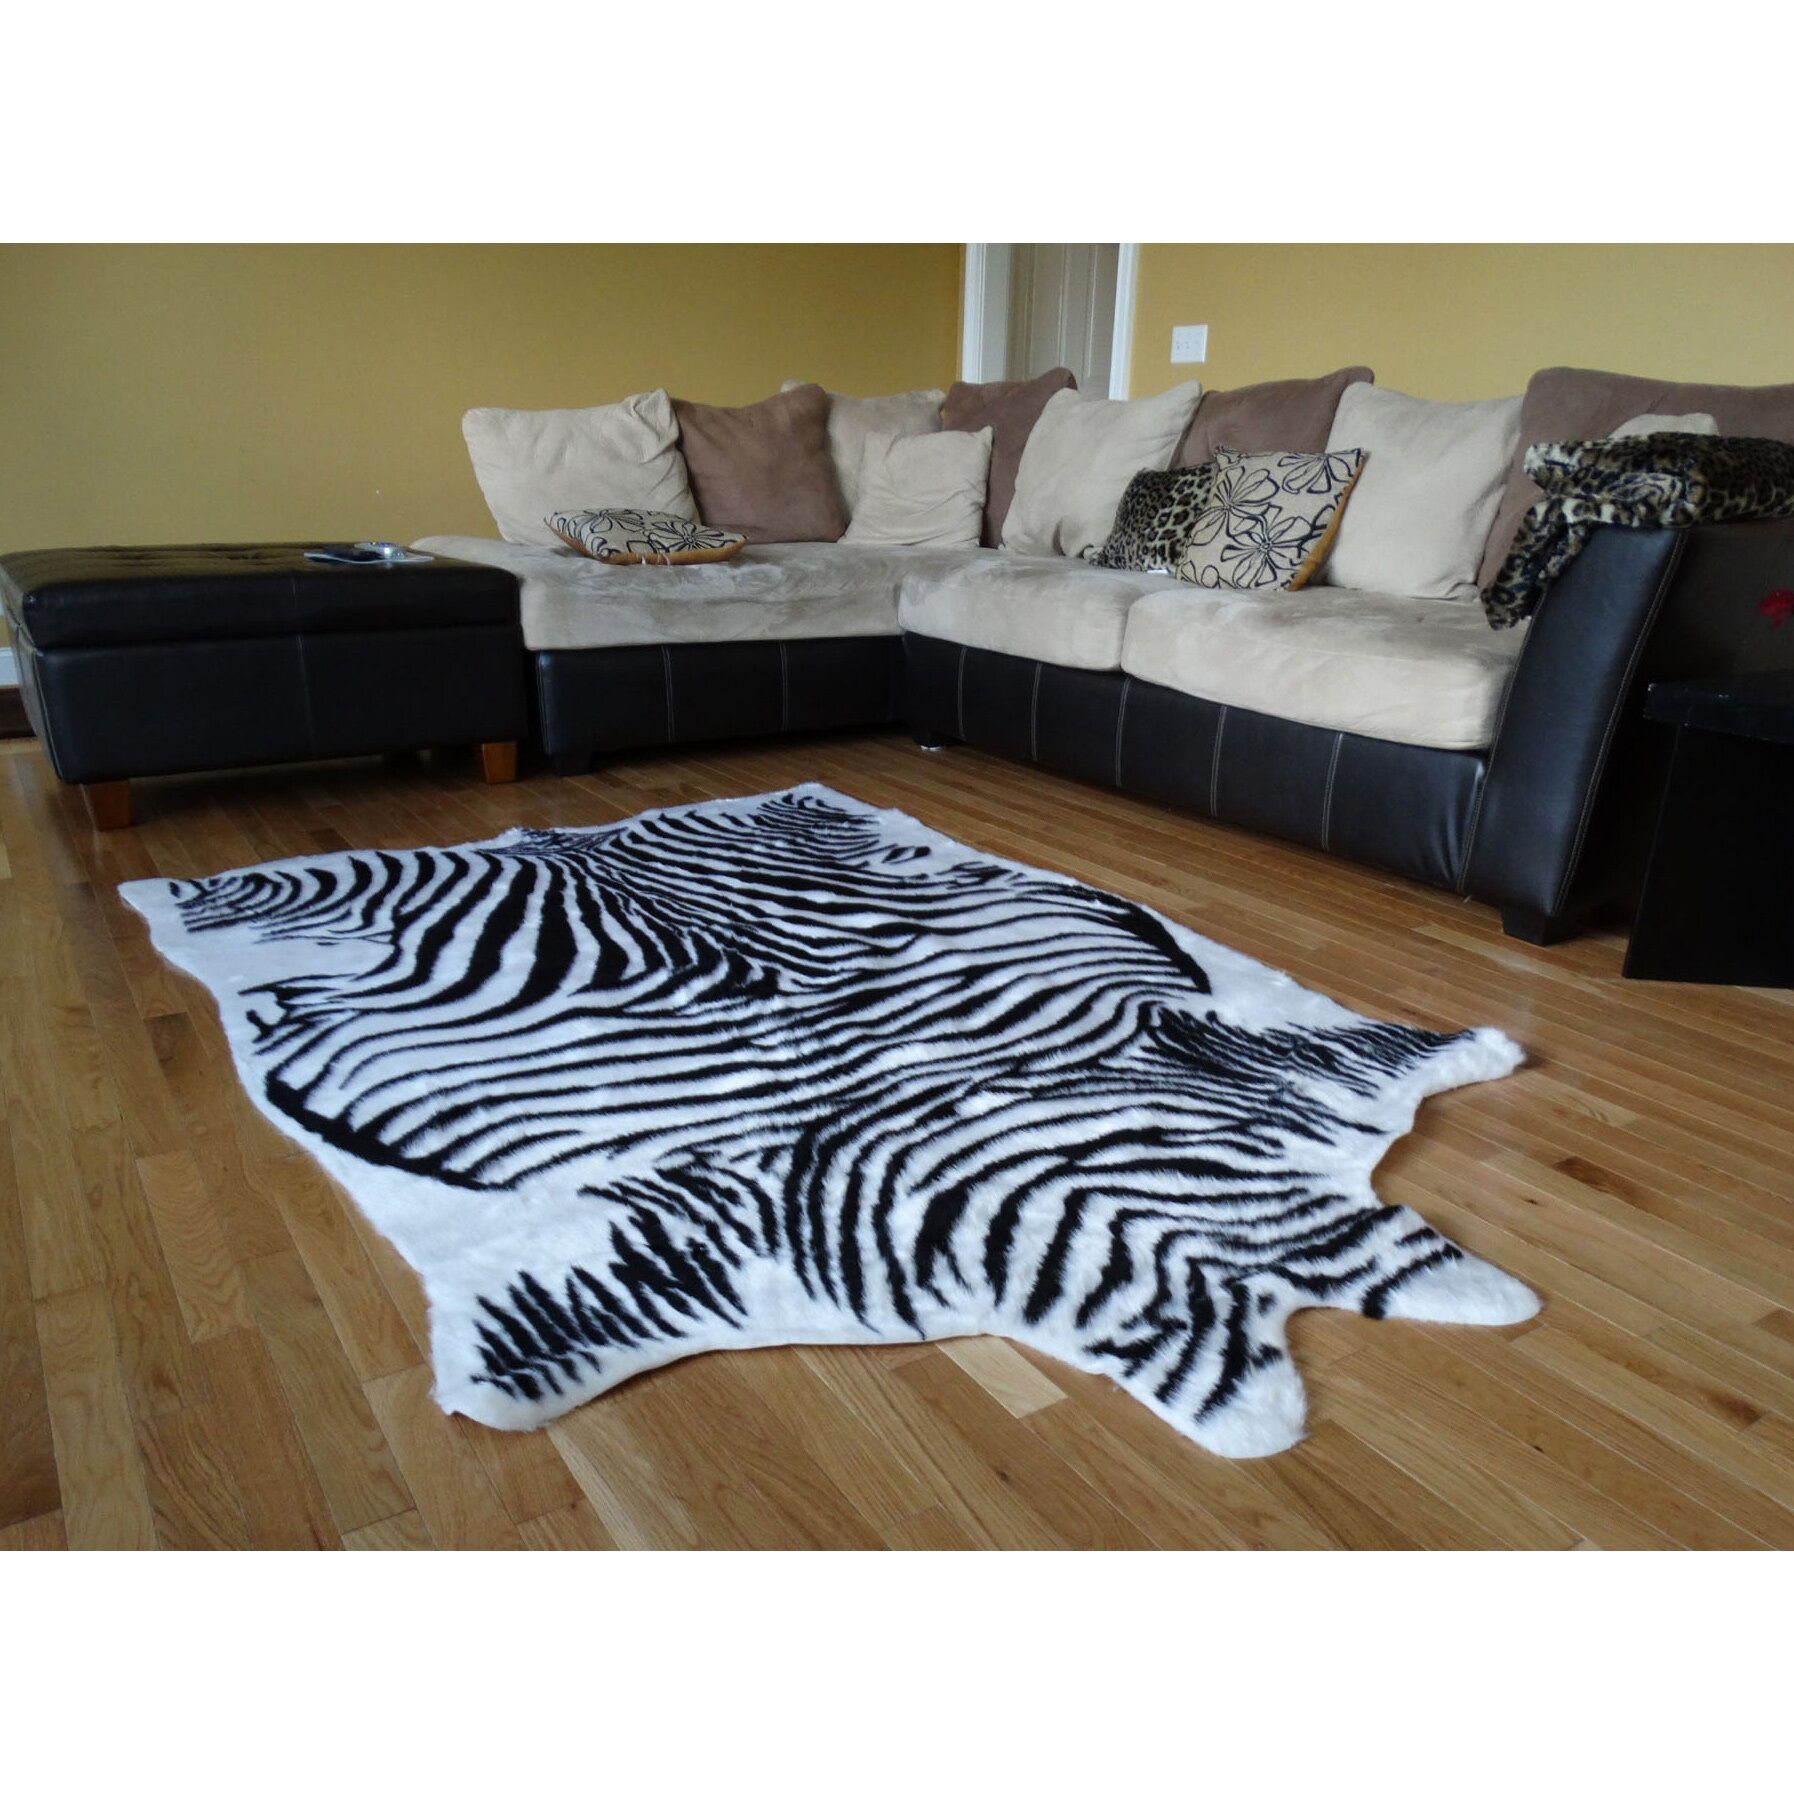 Acura Rugs Animal Hide White/Black Zebra Area Rug